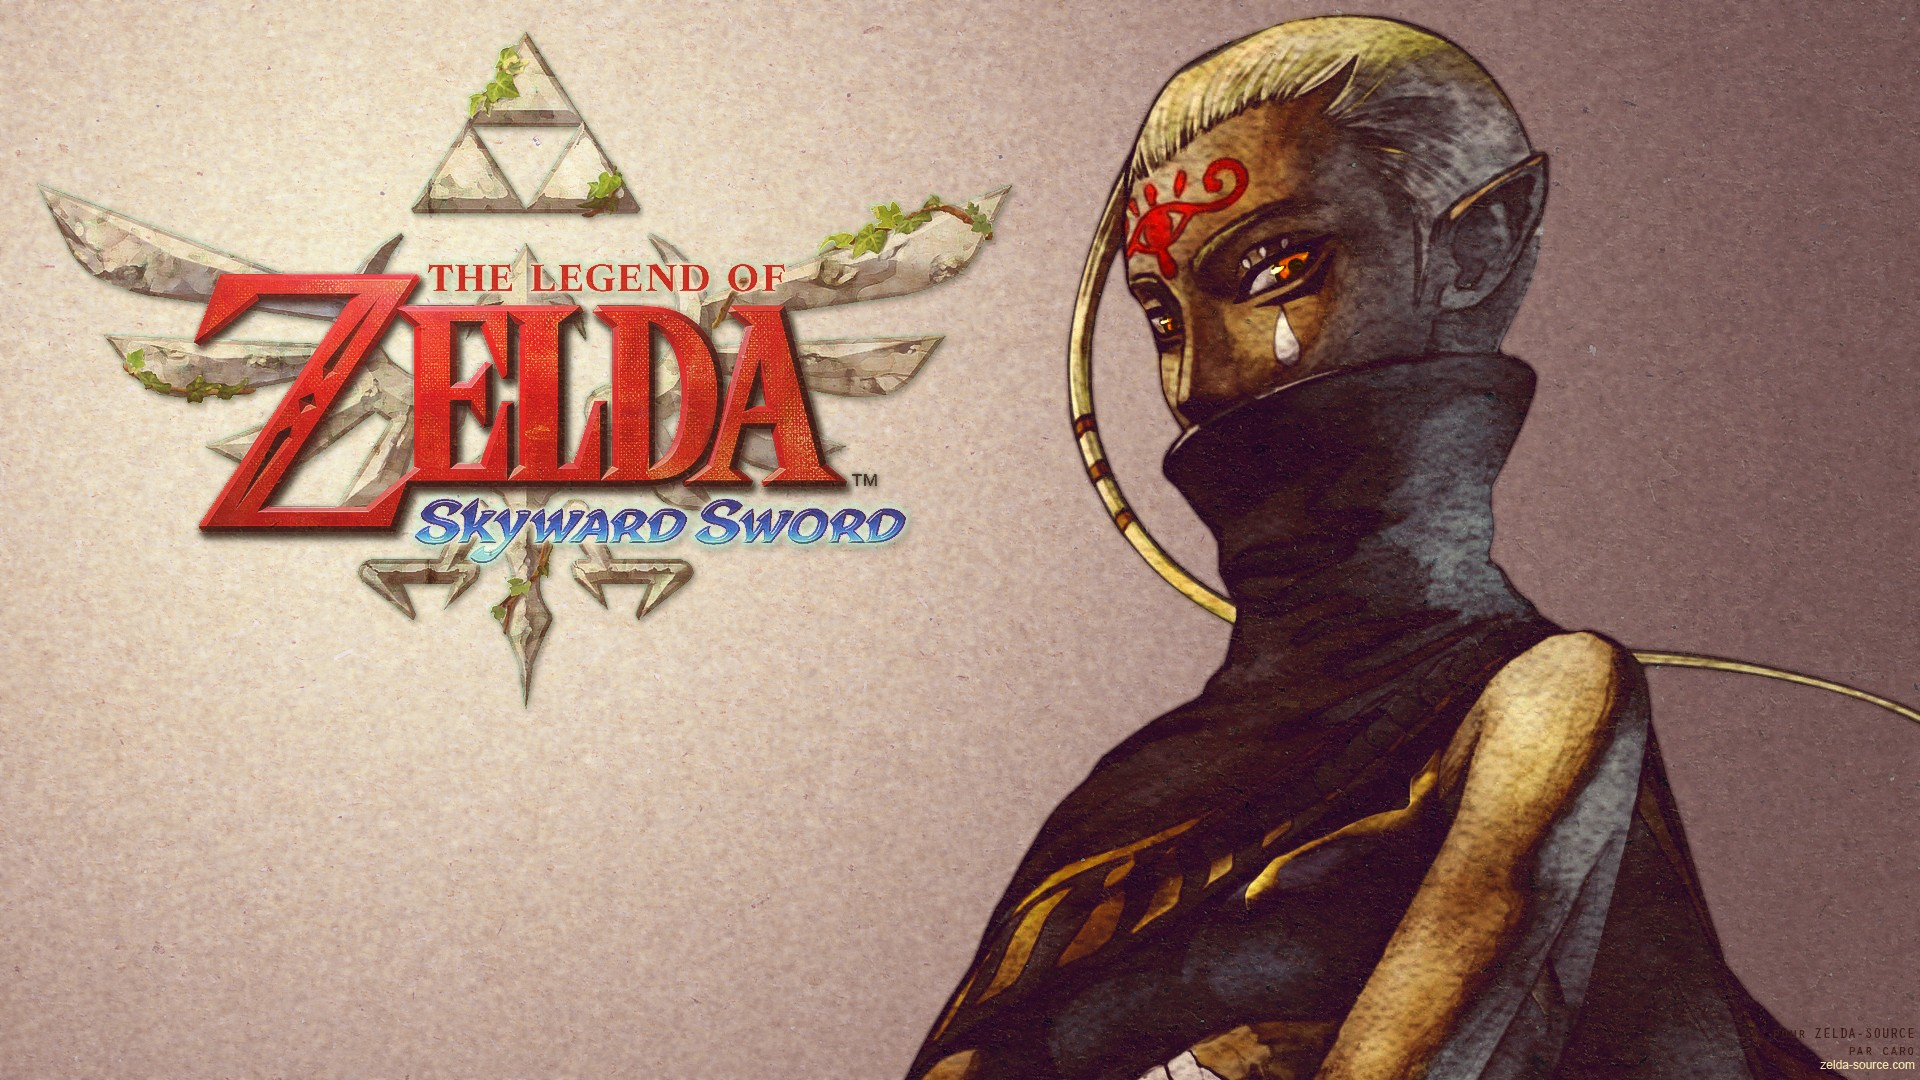 General 1920x1080 Impa video games the legend of zelda: skyward sword tears The Legend of Zelda video game art video game girls